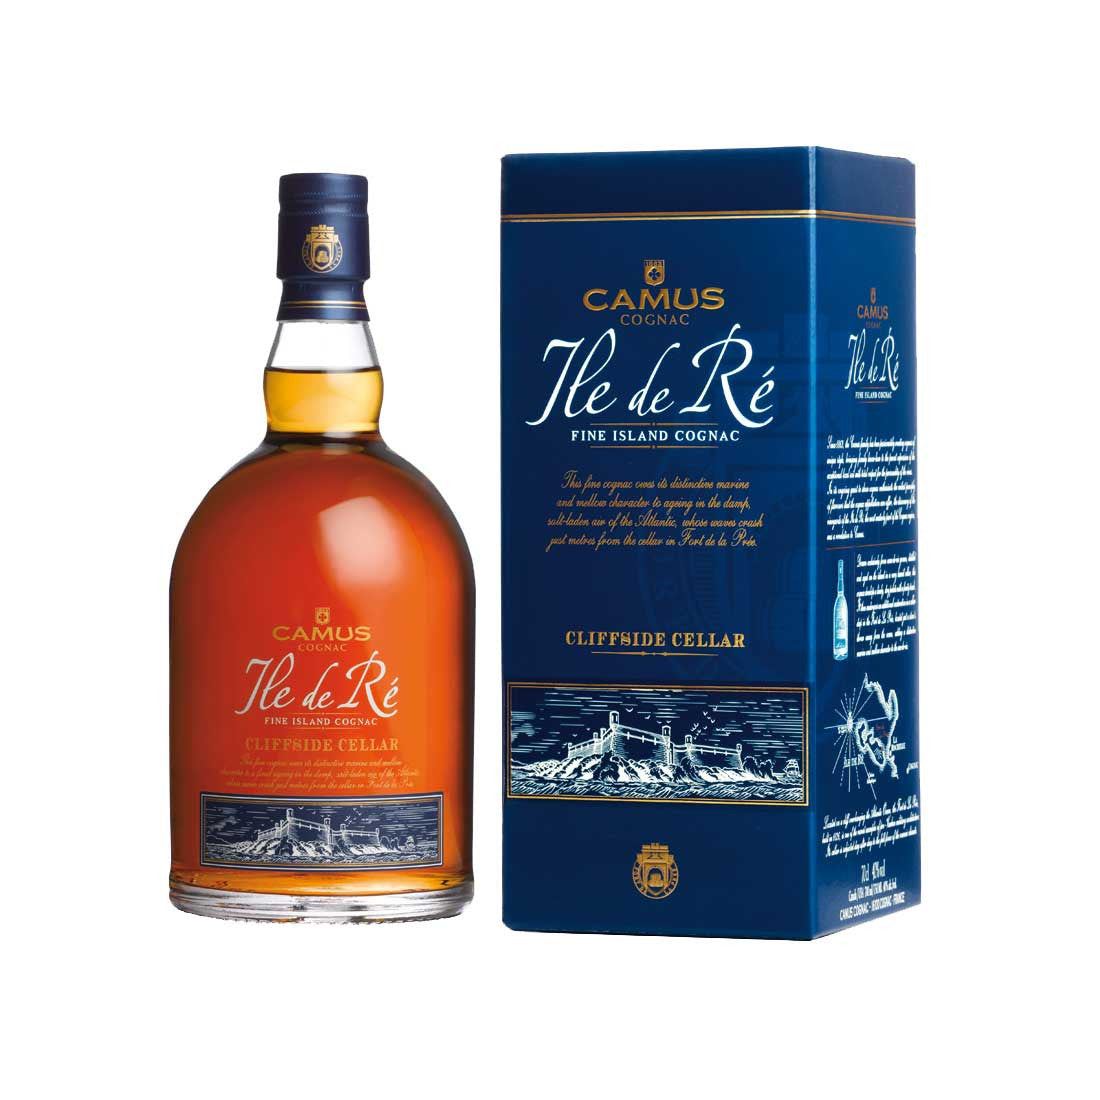 Camus Ile De Re Cliffside Cellar Cognac - 700ml Cognac & Brandy - Drinkka Alcohol Delivery Best Whiskey Wine Gin Beer Vodkas and more for Parties in Makati BGC Fort and Manila | Bevtools Bar and Beverage Tools